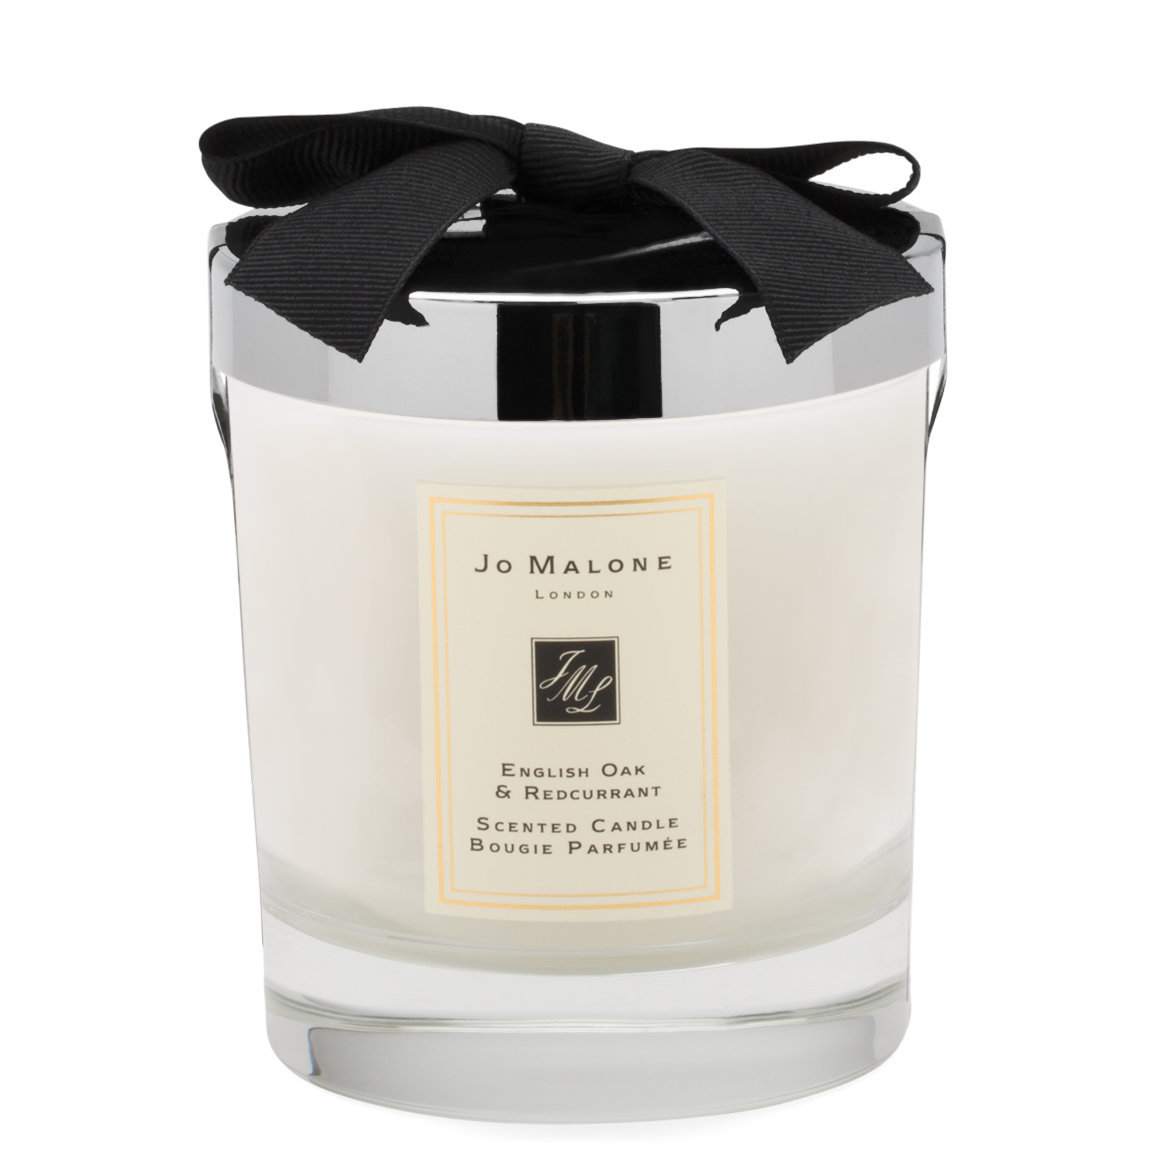 Jo Malone London English Oak & Redcurrant Scented Candle product swatch.